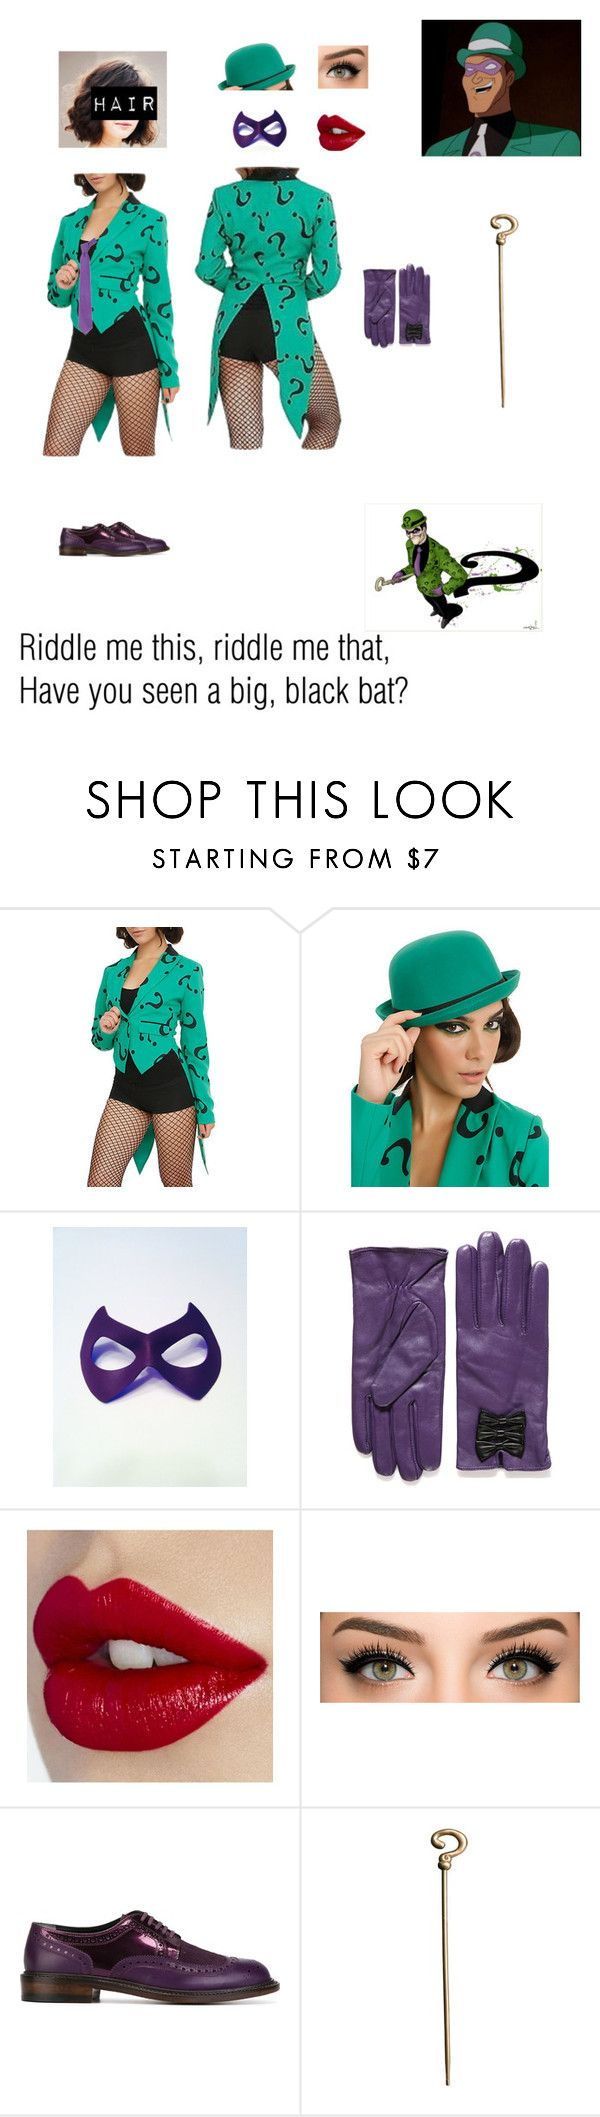 """""""Girl Version of the Riddler"""" by nerdbucket ❤ liked on Polyvore featuring Robert Clergerie, Forzieri, women's clothing, women, female, woman, misses and juniors"""